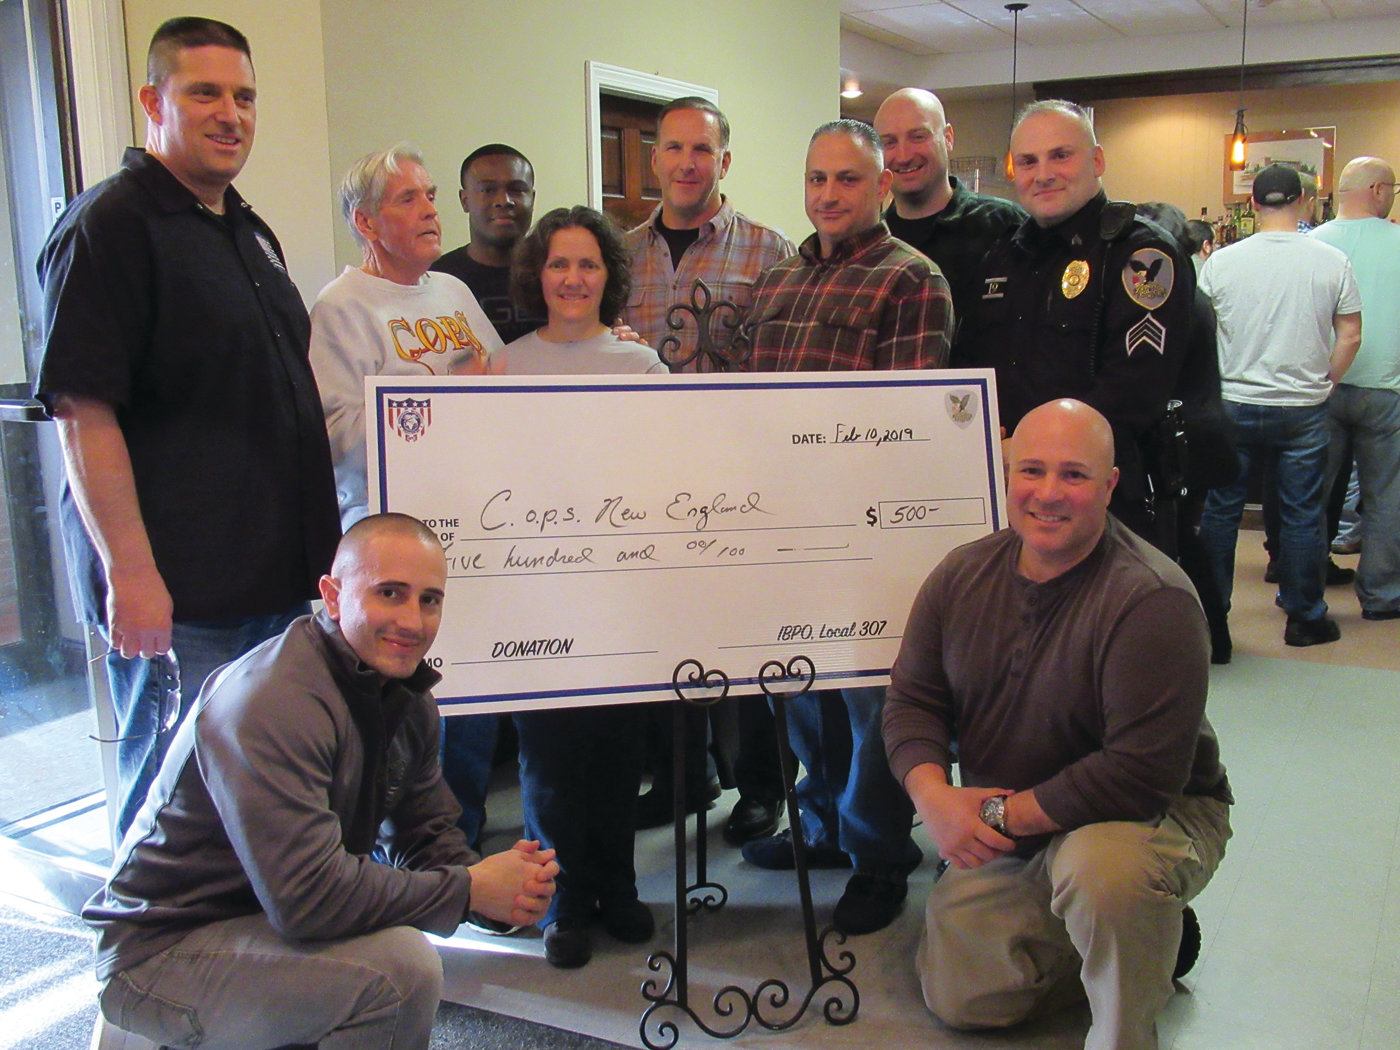 CHECK PRESENTATION: Robert Shaw, father of the late Providence Police Sgt. Steven M. Shaw, and his wife, Maria, are joined by IBPO Local 307 members during Sunday's check presentation to COPS. Pictured, kneeling in front, are patrolmen Arthur Petteruti and Mario Mennella, and standing, Sgt. Joe Scichilone, Patrolman Derek Ofori, Detective Brian Loffredi, Patrolman Mike Andreozzi, Capt. Matt Benson and Sgt. David Loffler.